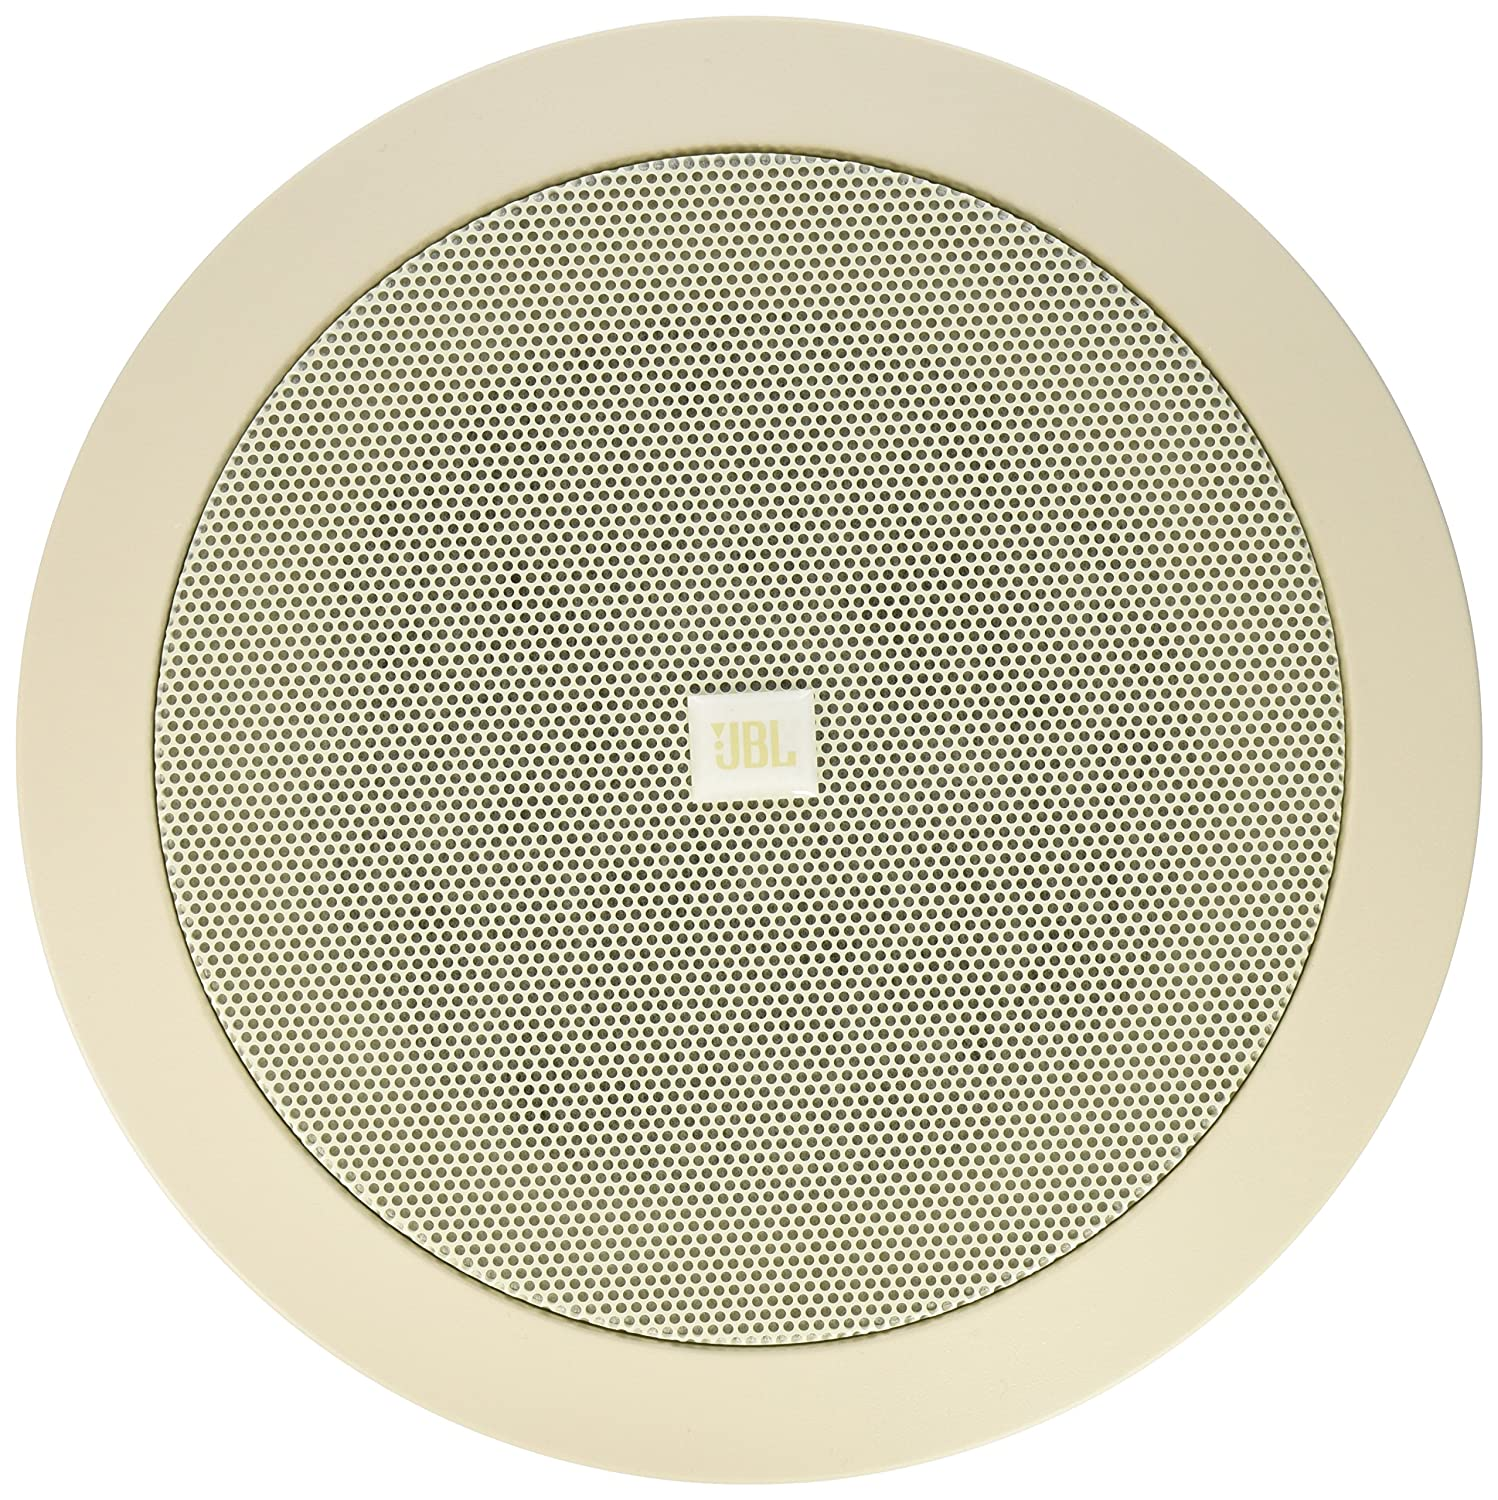 Leviton AEM65 Architectural Edition powered by JBL 6-1/2-Inch Two-Way In-Ceiling Loudspeaker (White)